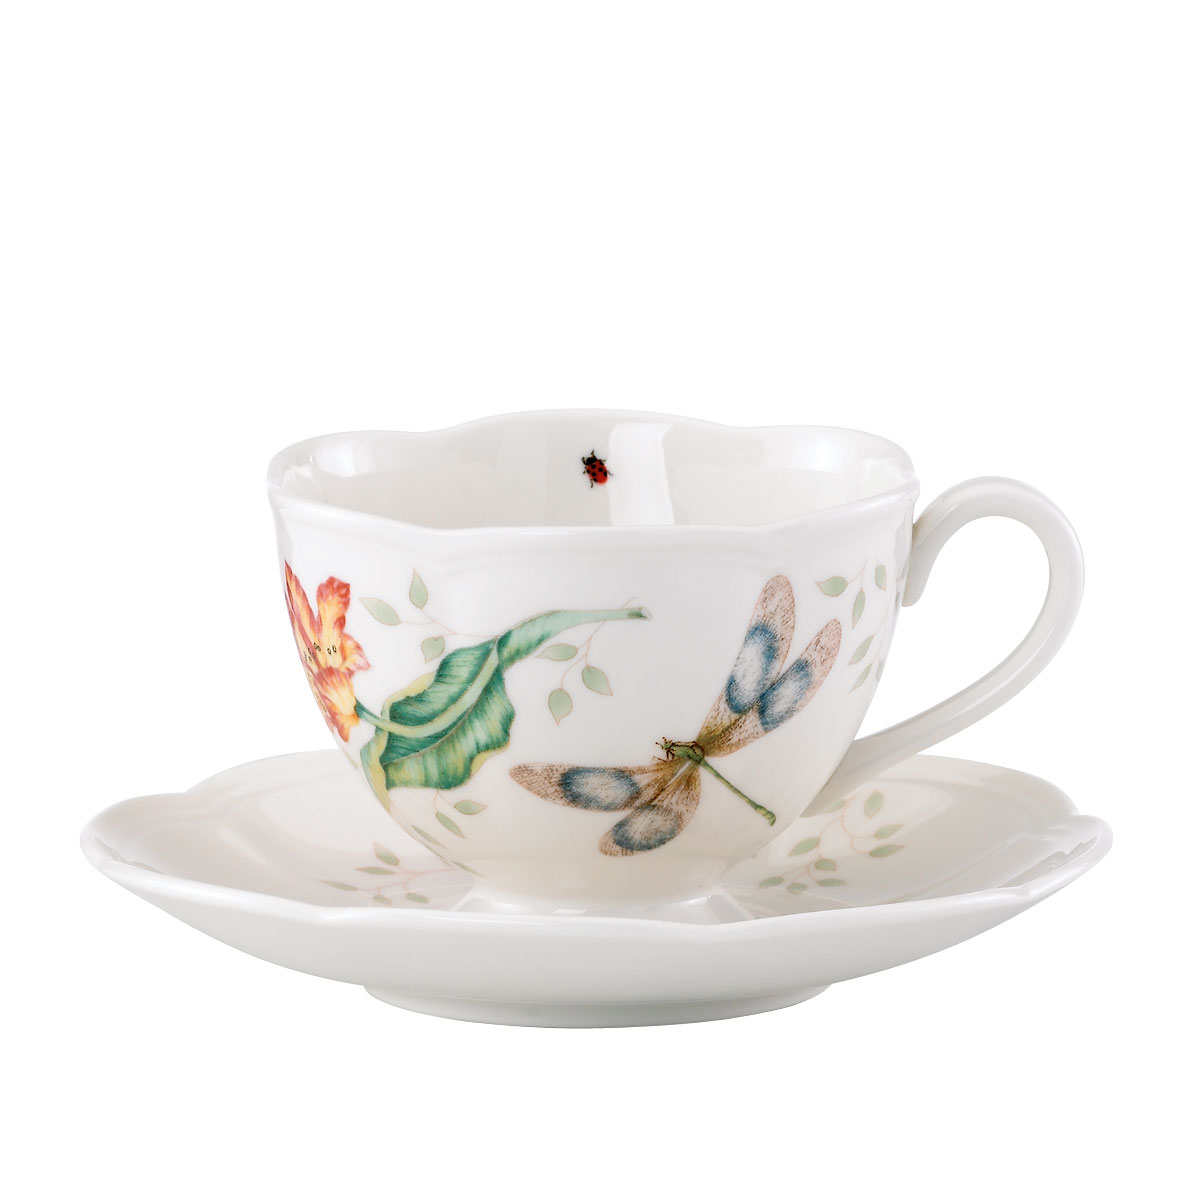 Lenox Butterfly Meadow Dinnerware Dragonfly Cup And Saucer